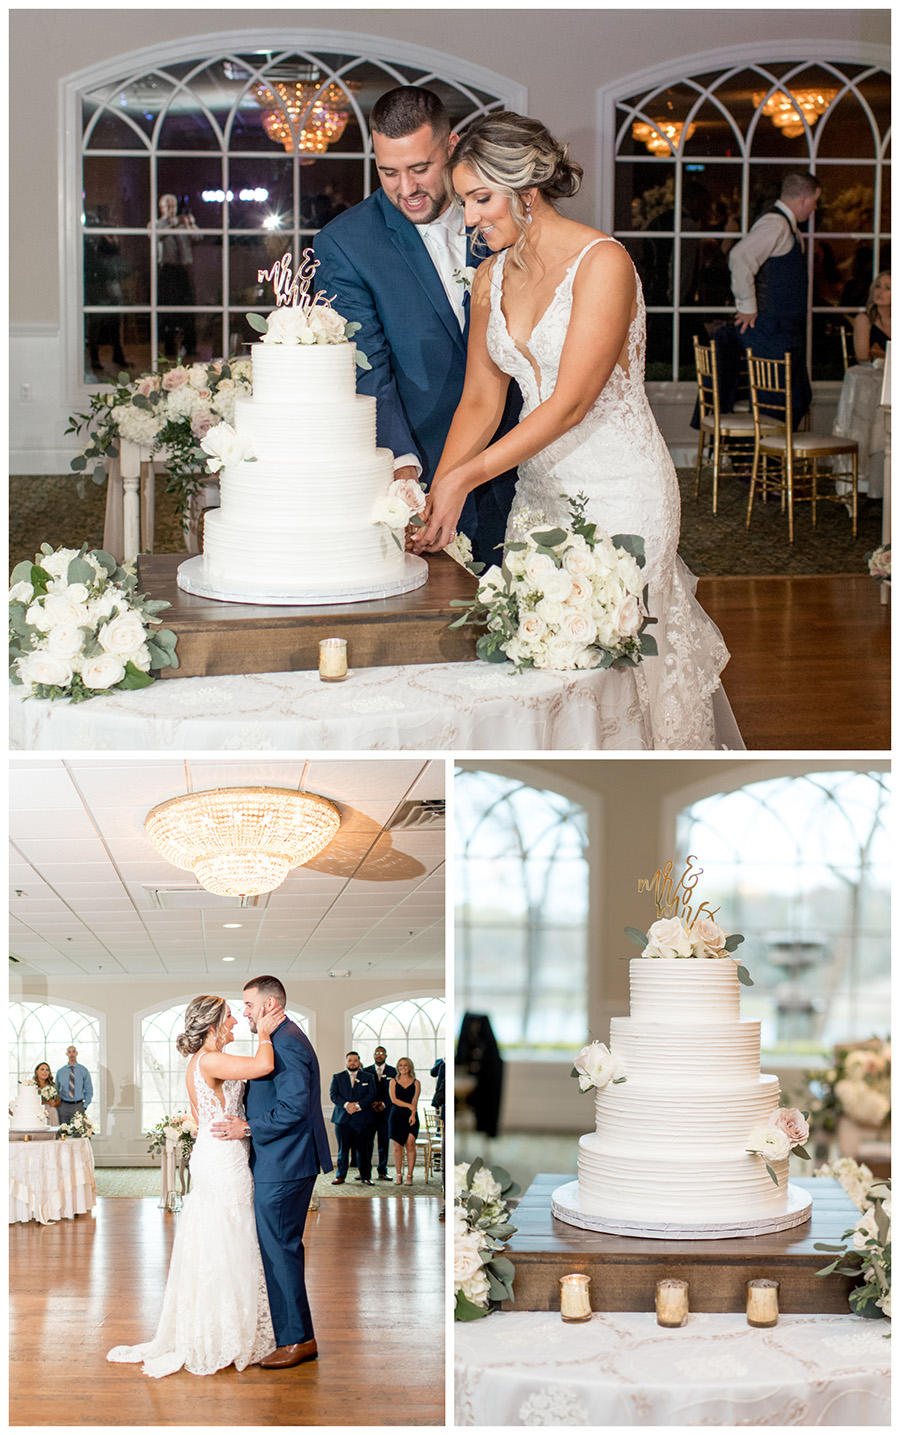 Bride and groom cut their cake in the ballroom at the Bradford Estate